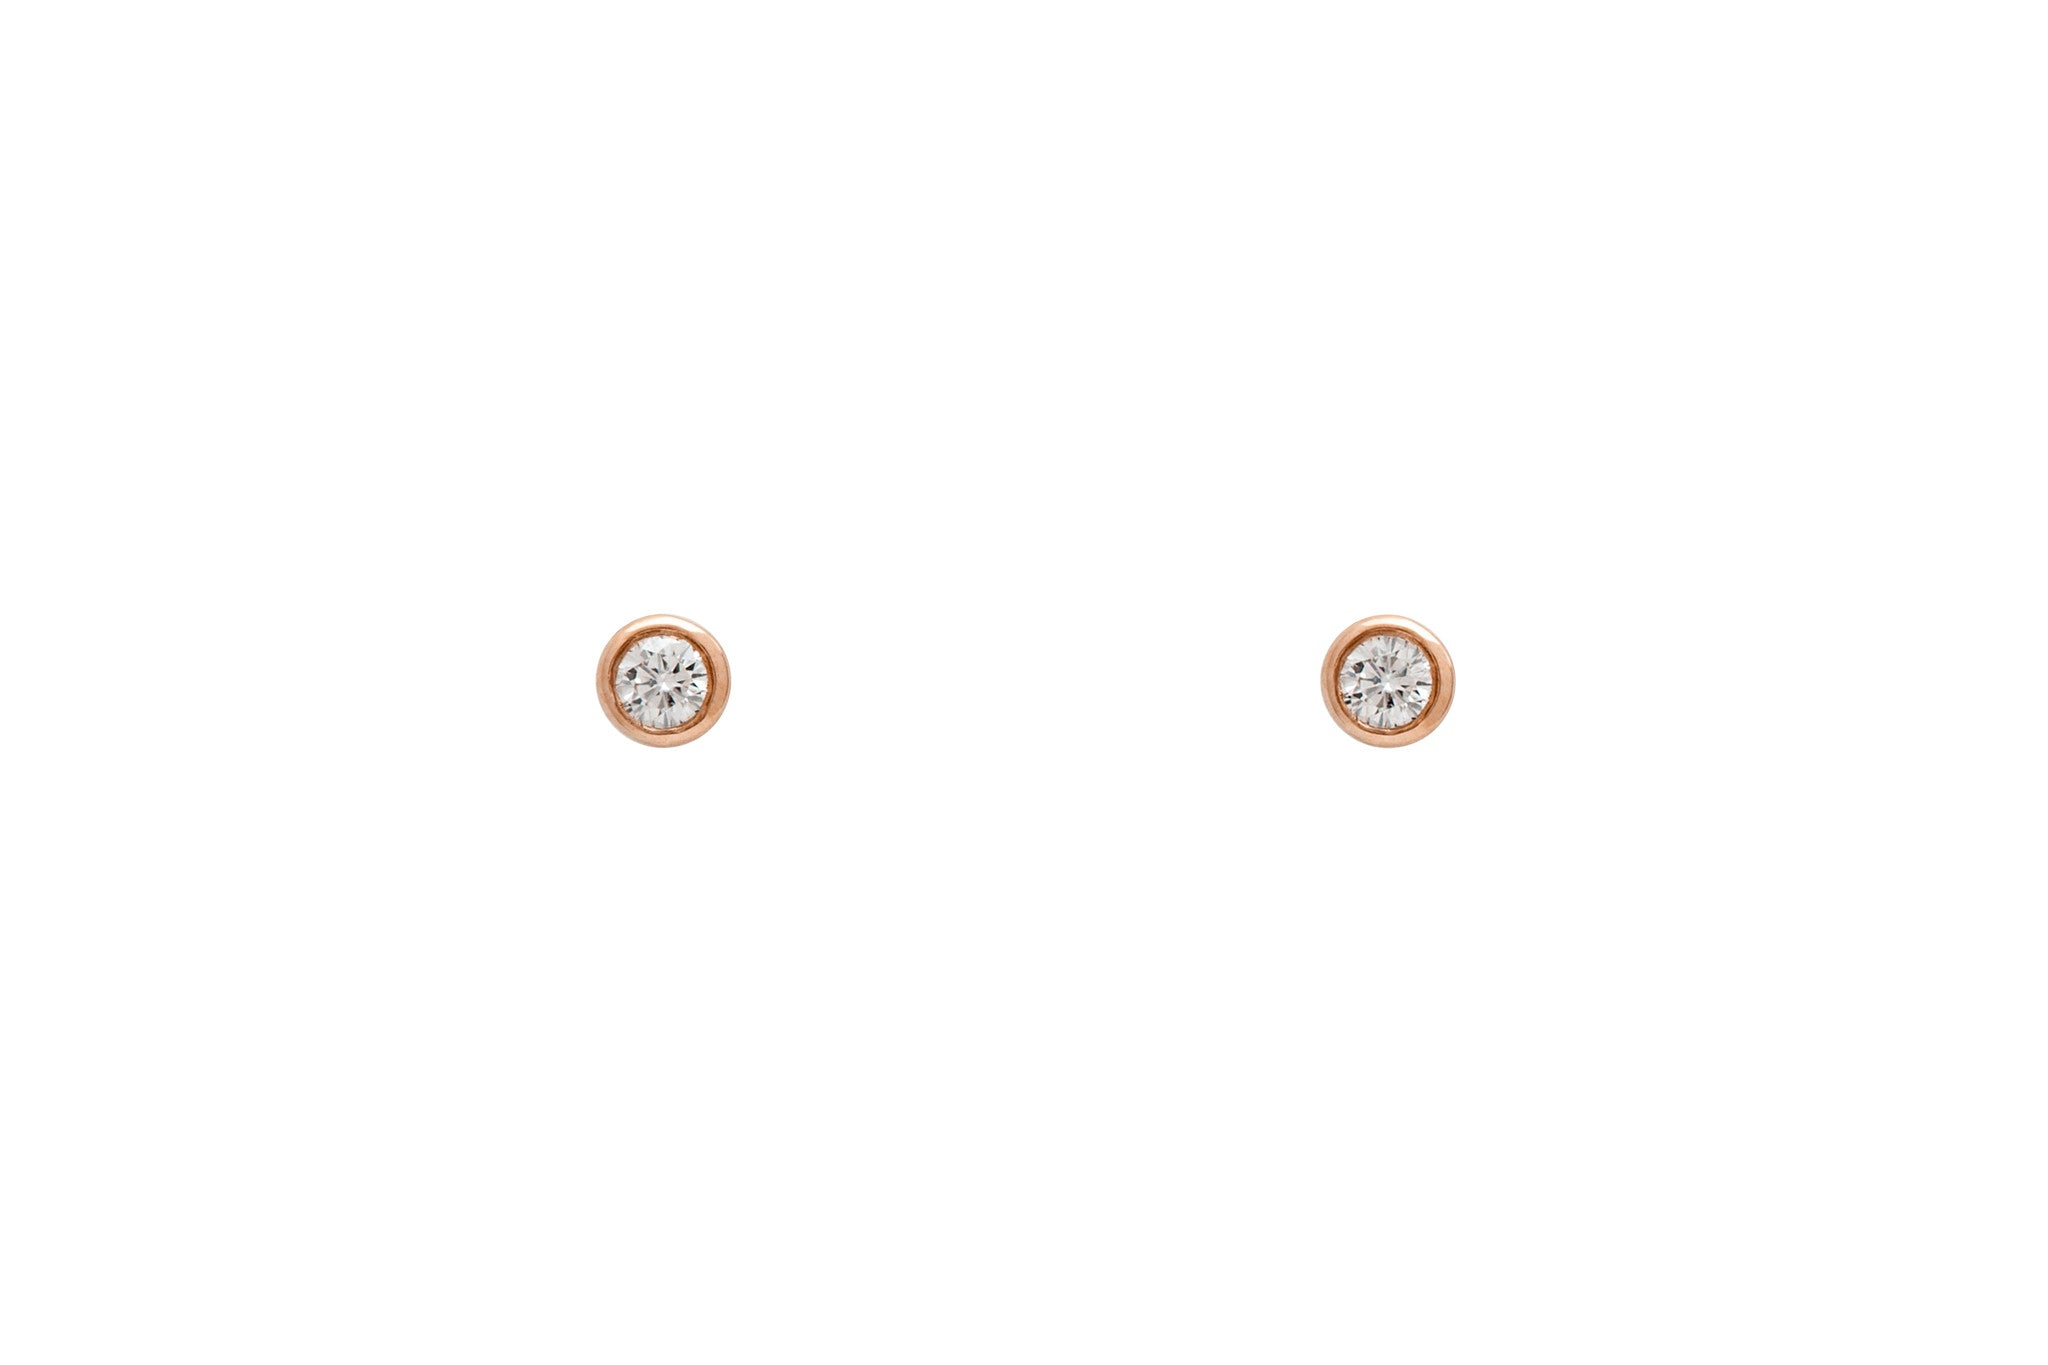 14k Rose Gold Genuine Diamond Bezel Set Stud Earrings E2224